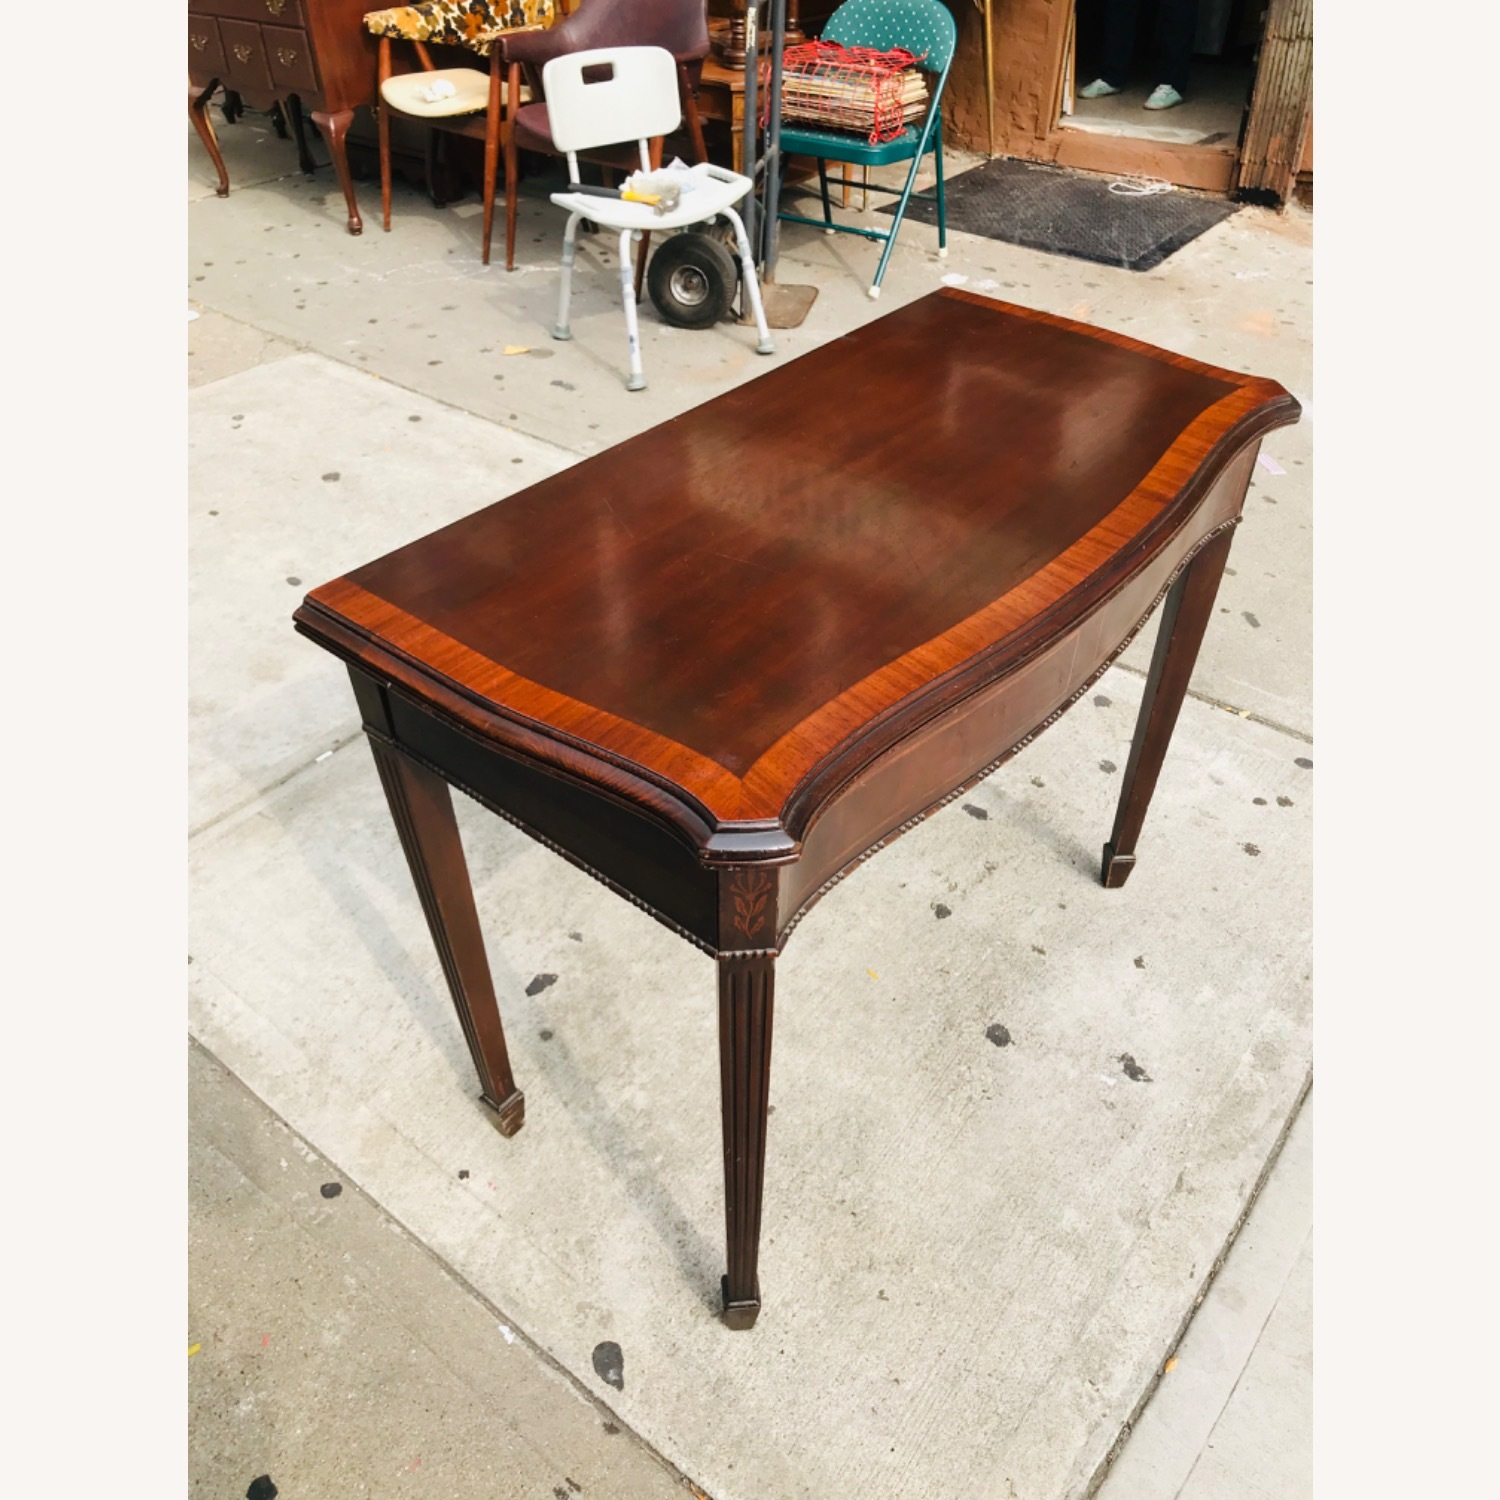 Antique 1920s Mahogany Table w/3 Leaves  - image-8